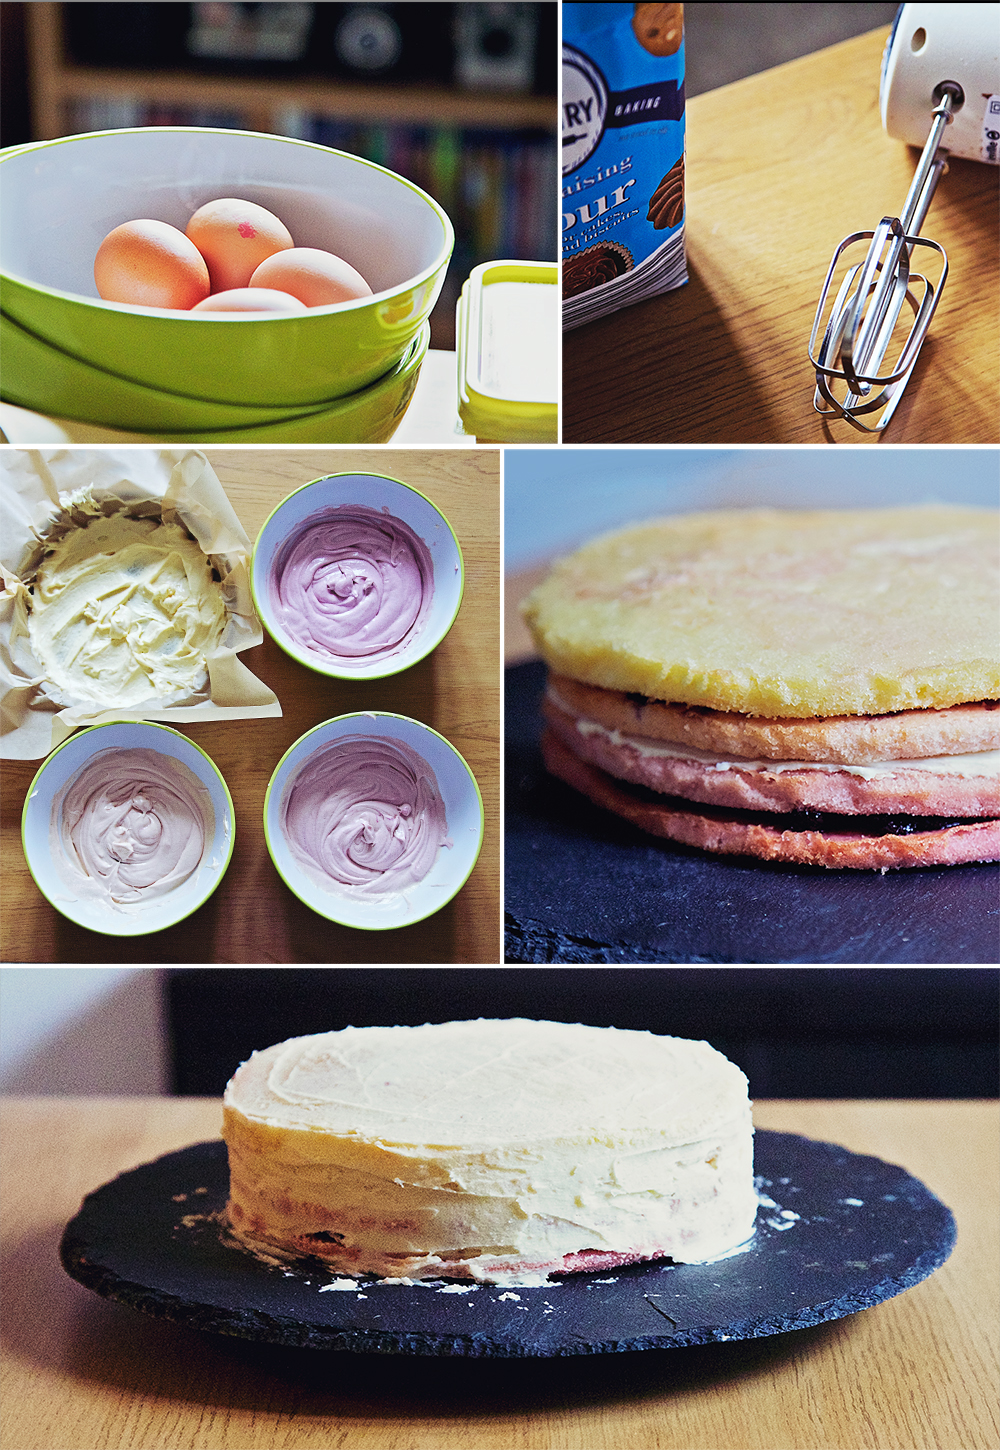 Montage of photos showing the method for making an ombre cake